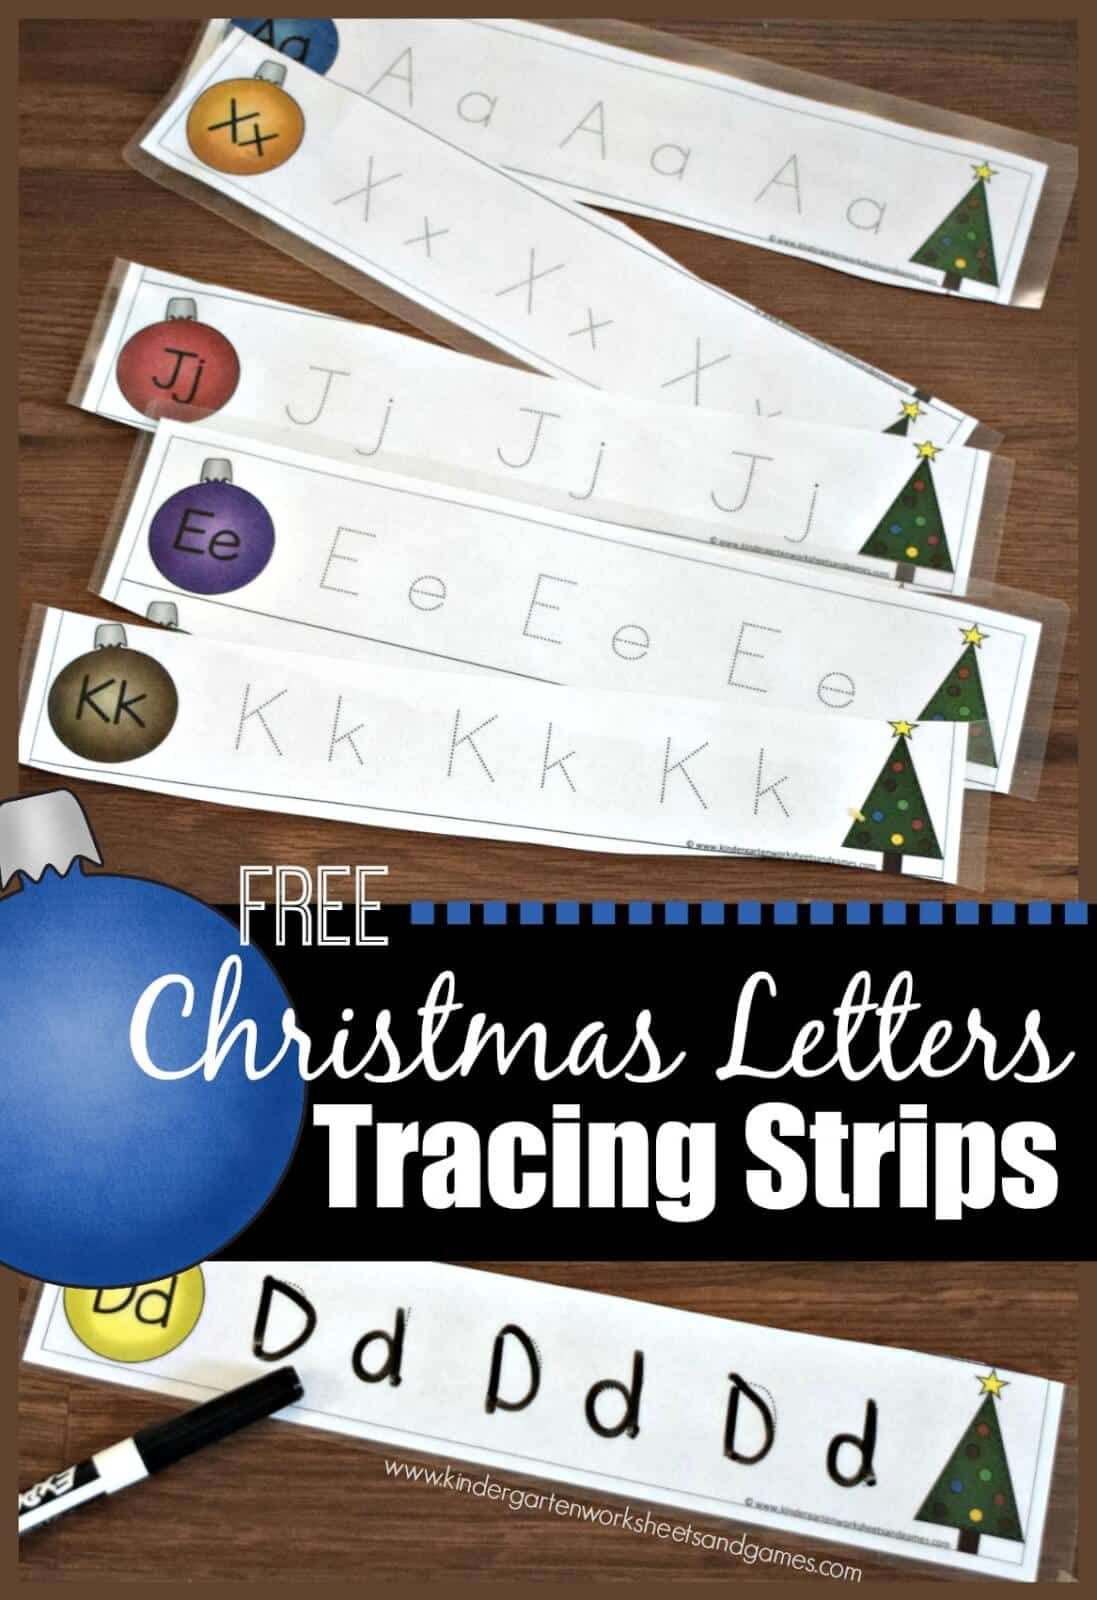 Free Christmas Letter Tracing Strips